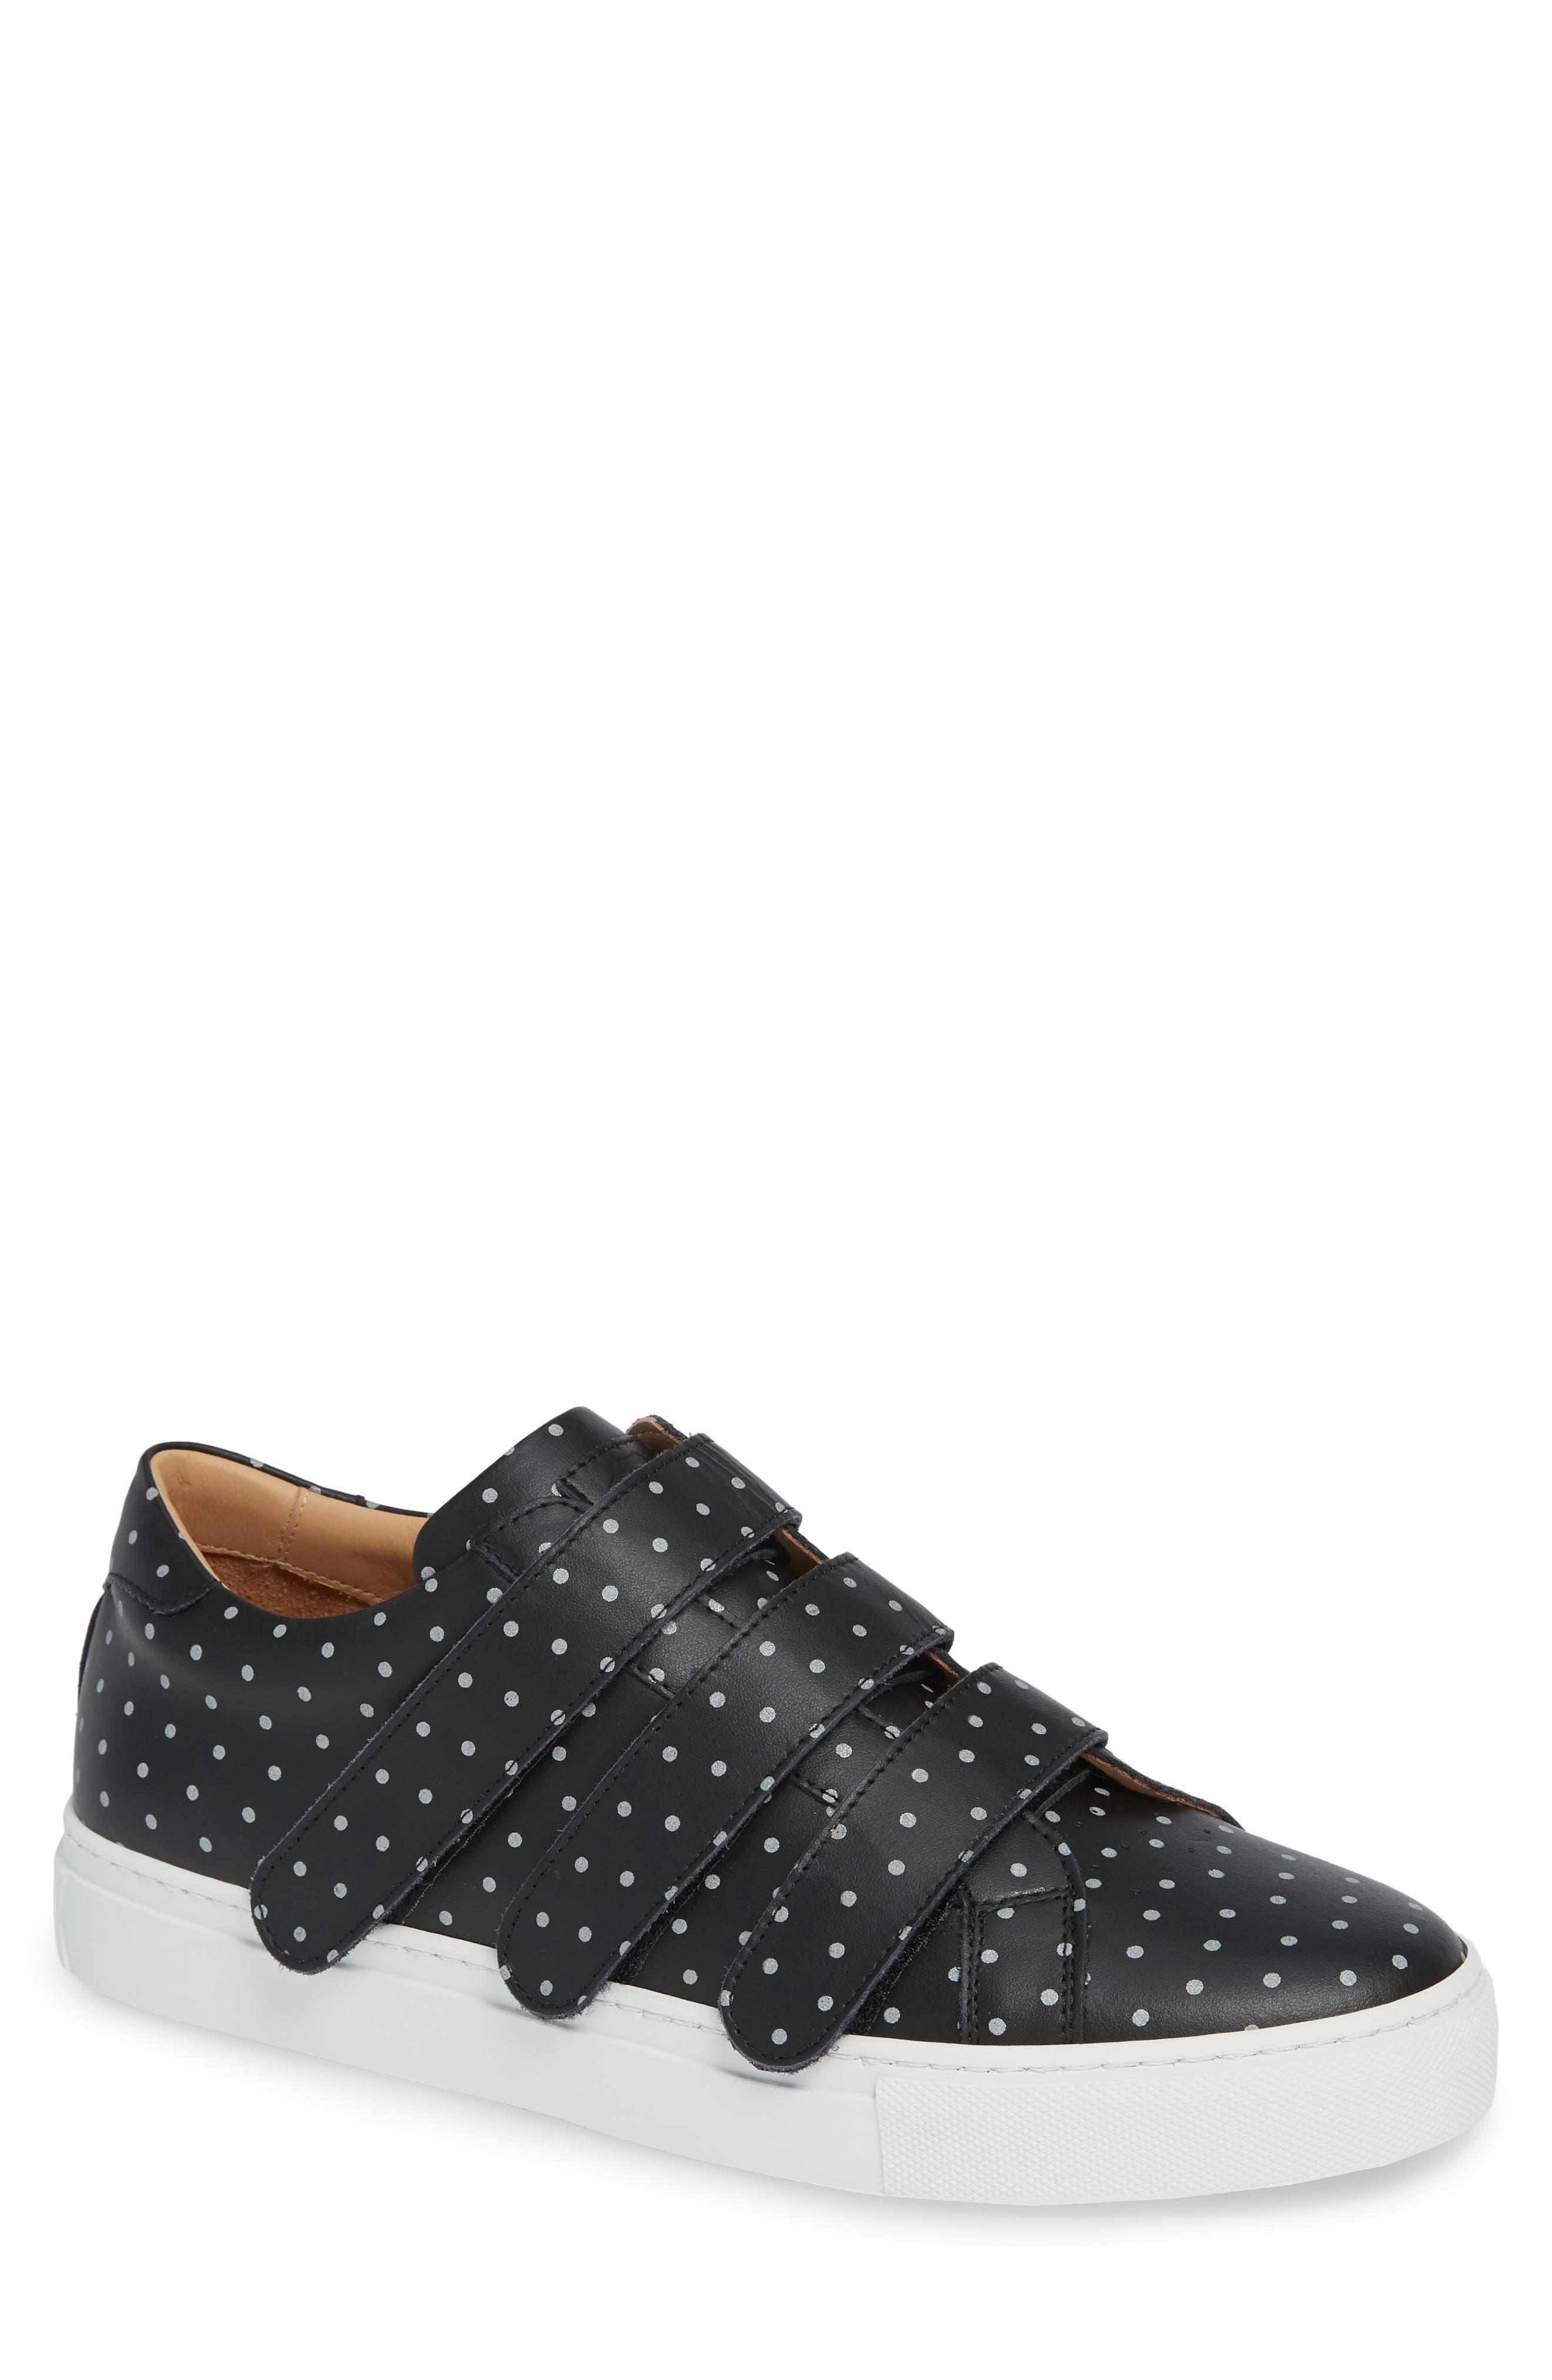 Nick Wooster x GREATS Royale Low Top Sneaker,                         Main,                         color, BLACK LEATHER 3M